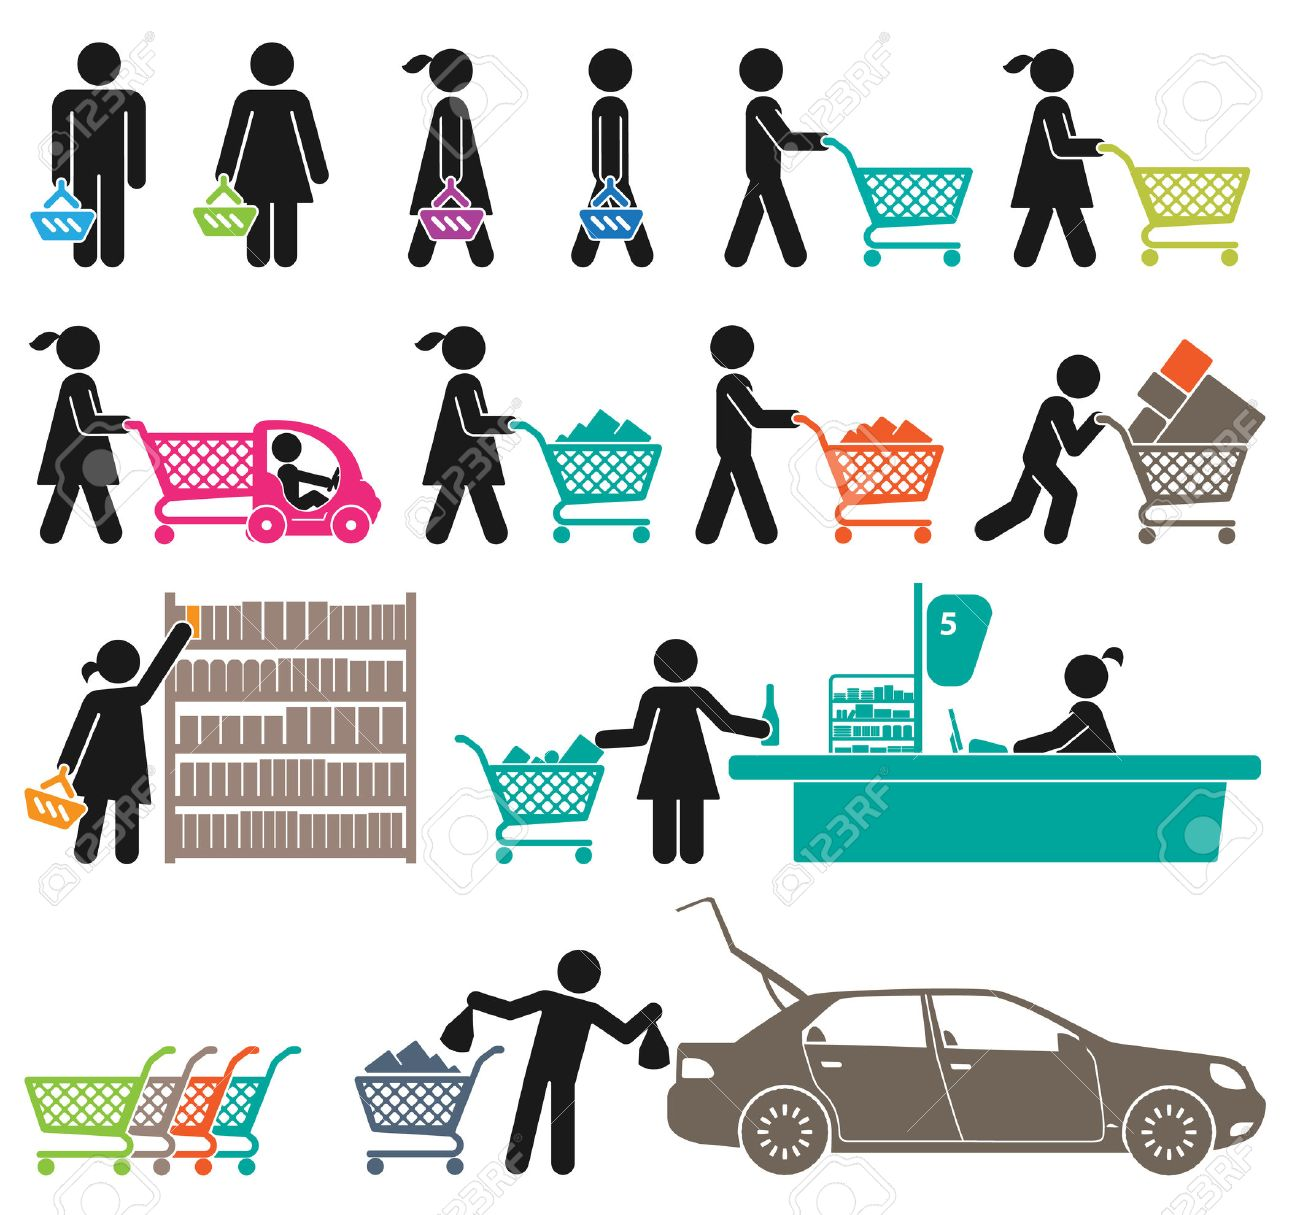 ICONS OF MEN AND WOMEN GO SHOPPING - 24539864